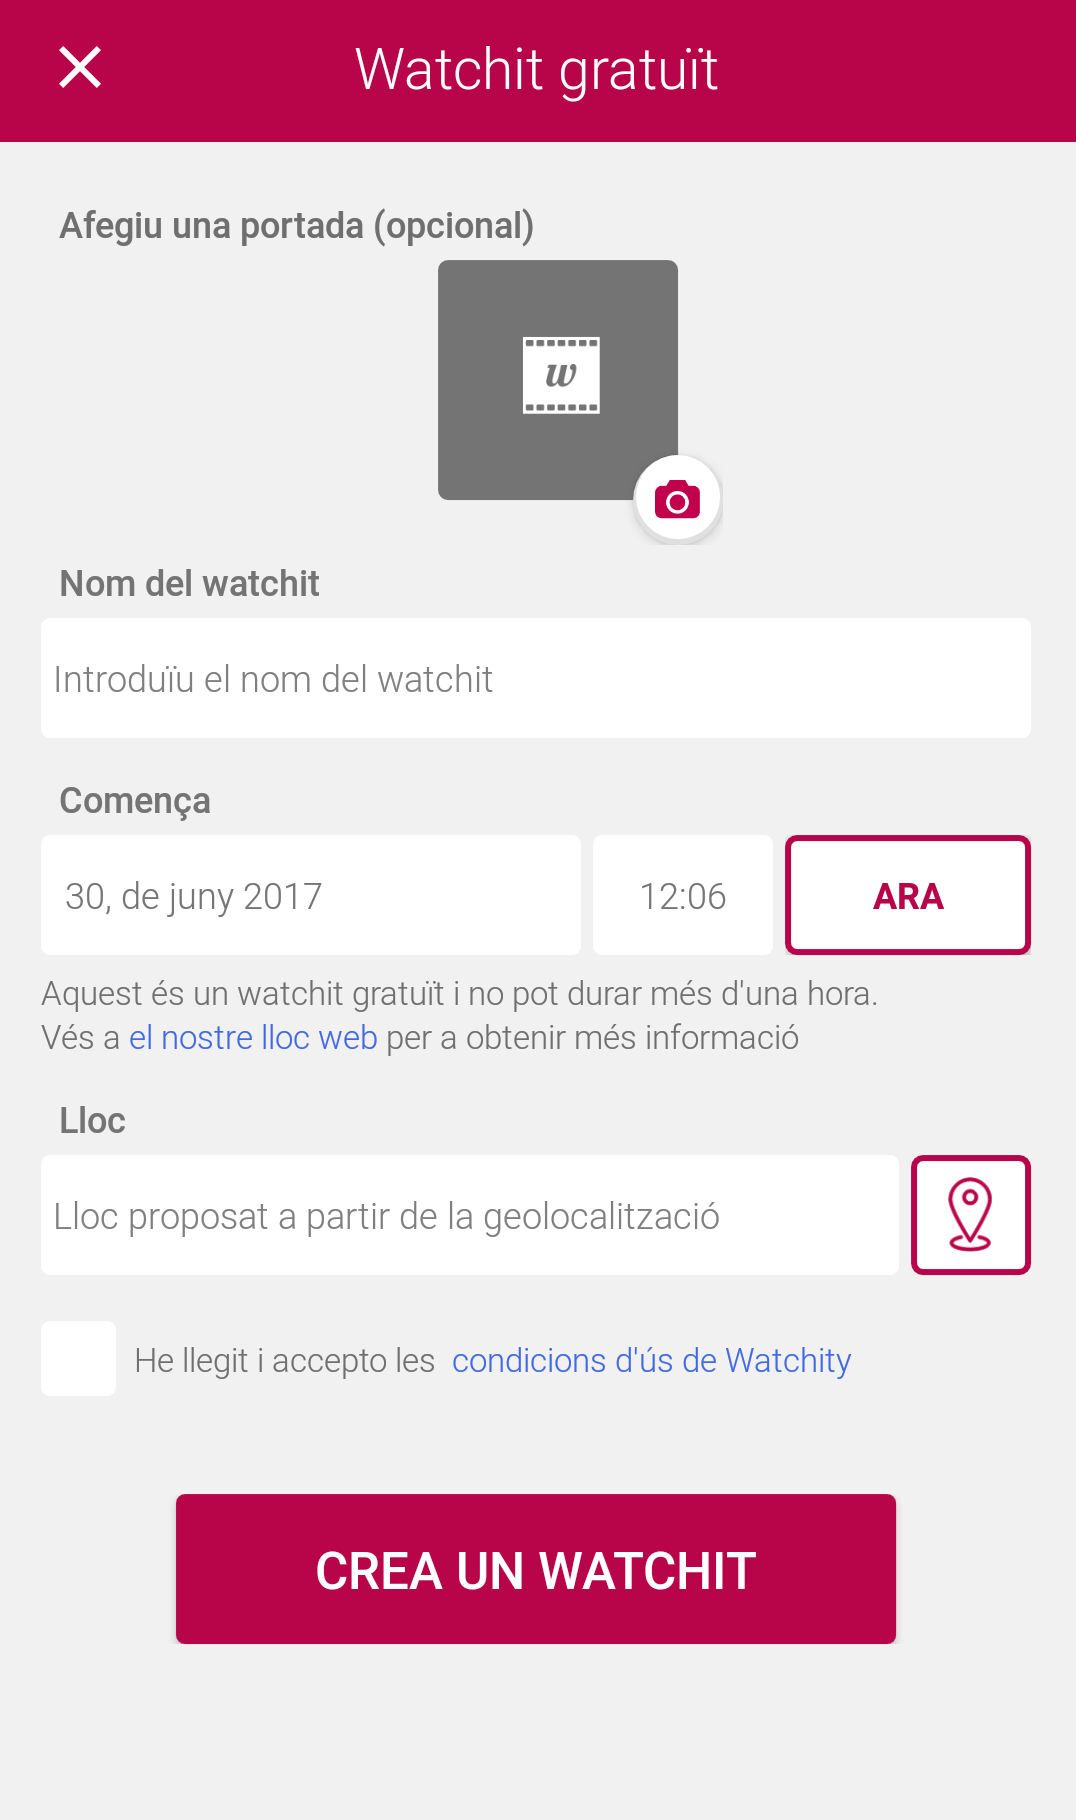 crear whatchity amb totes les dades Font: whatchity